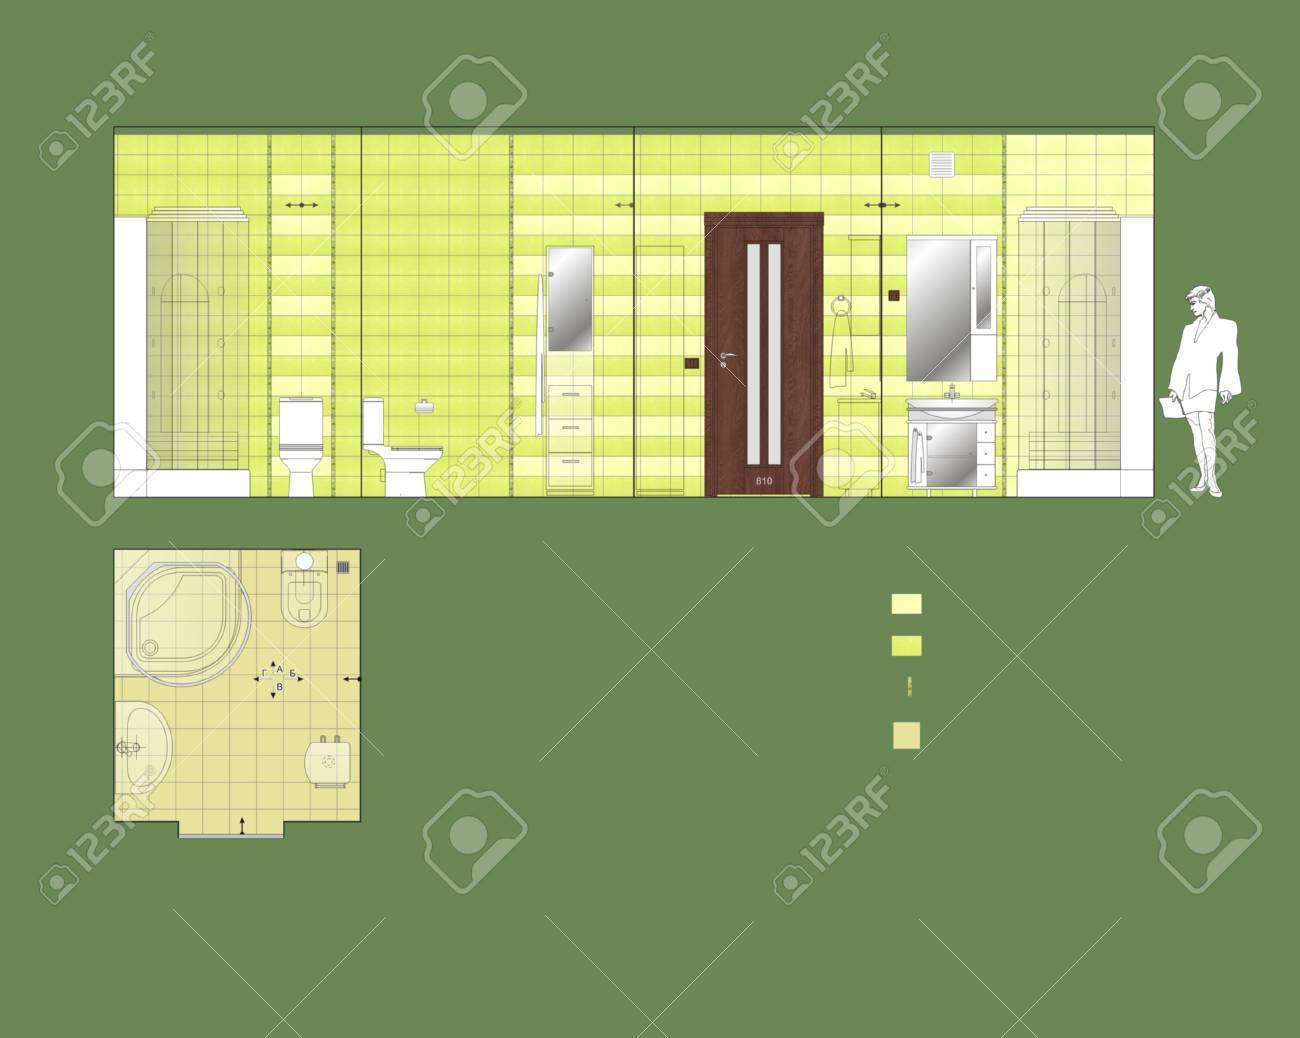 Drawing Wall And Floor Ceramic Tile Bathroom Stock Photo, Picture ...